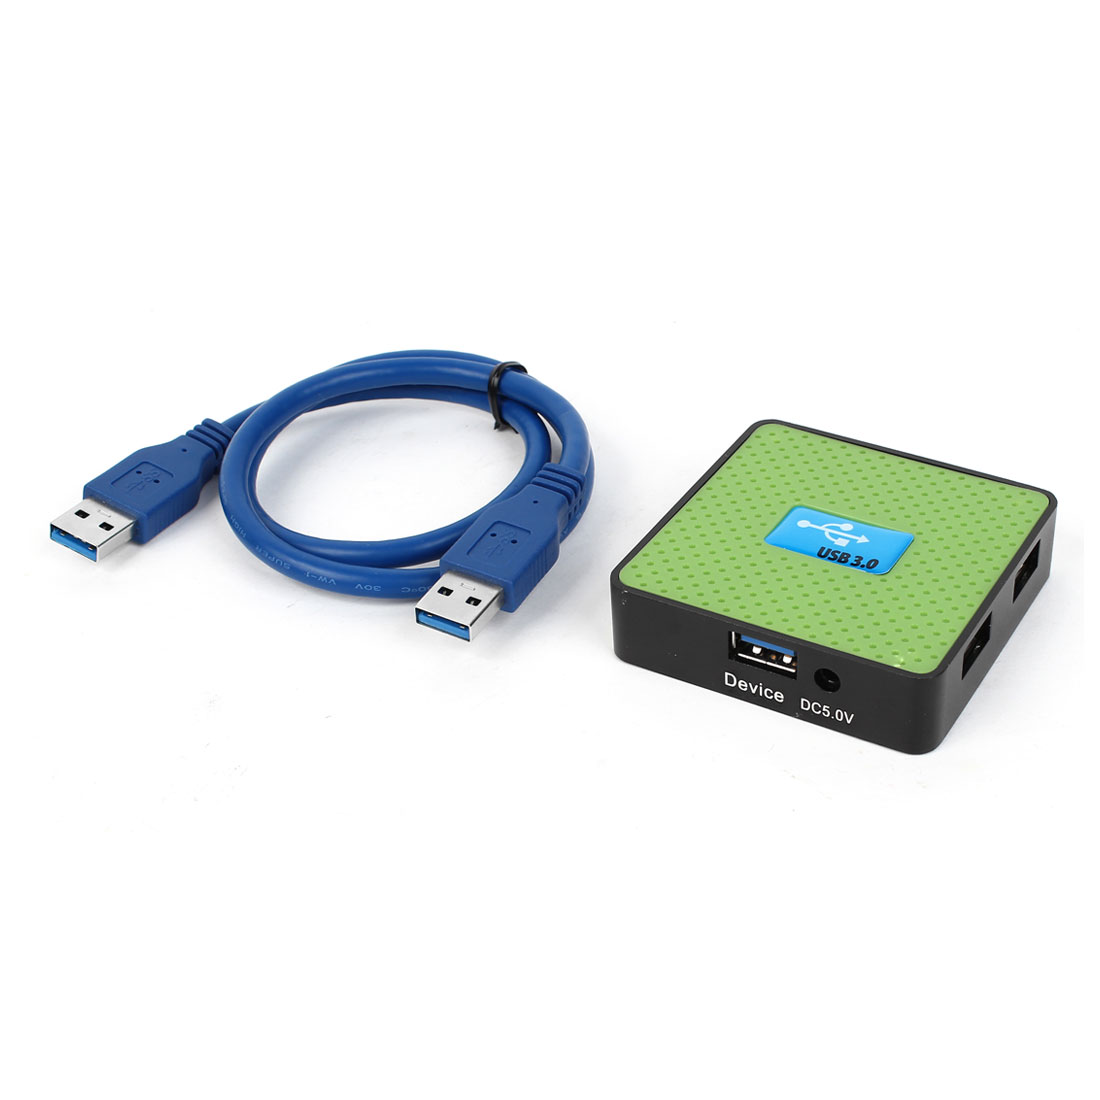 Square 4 Ports High Speed USB 3.0 Powered Adapter Hub Splitter for Laptop Computer